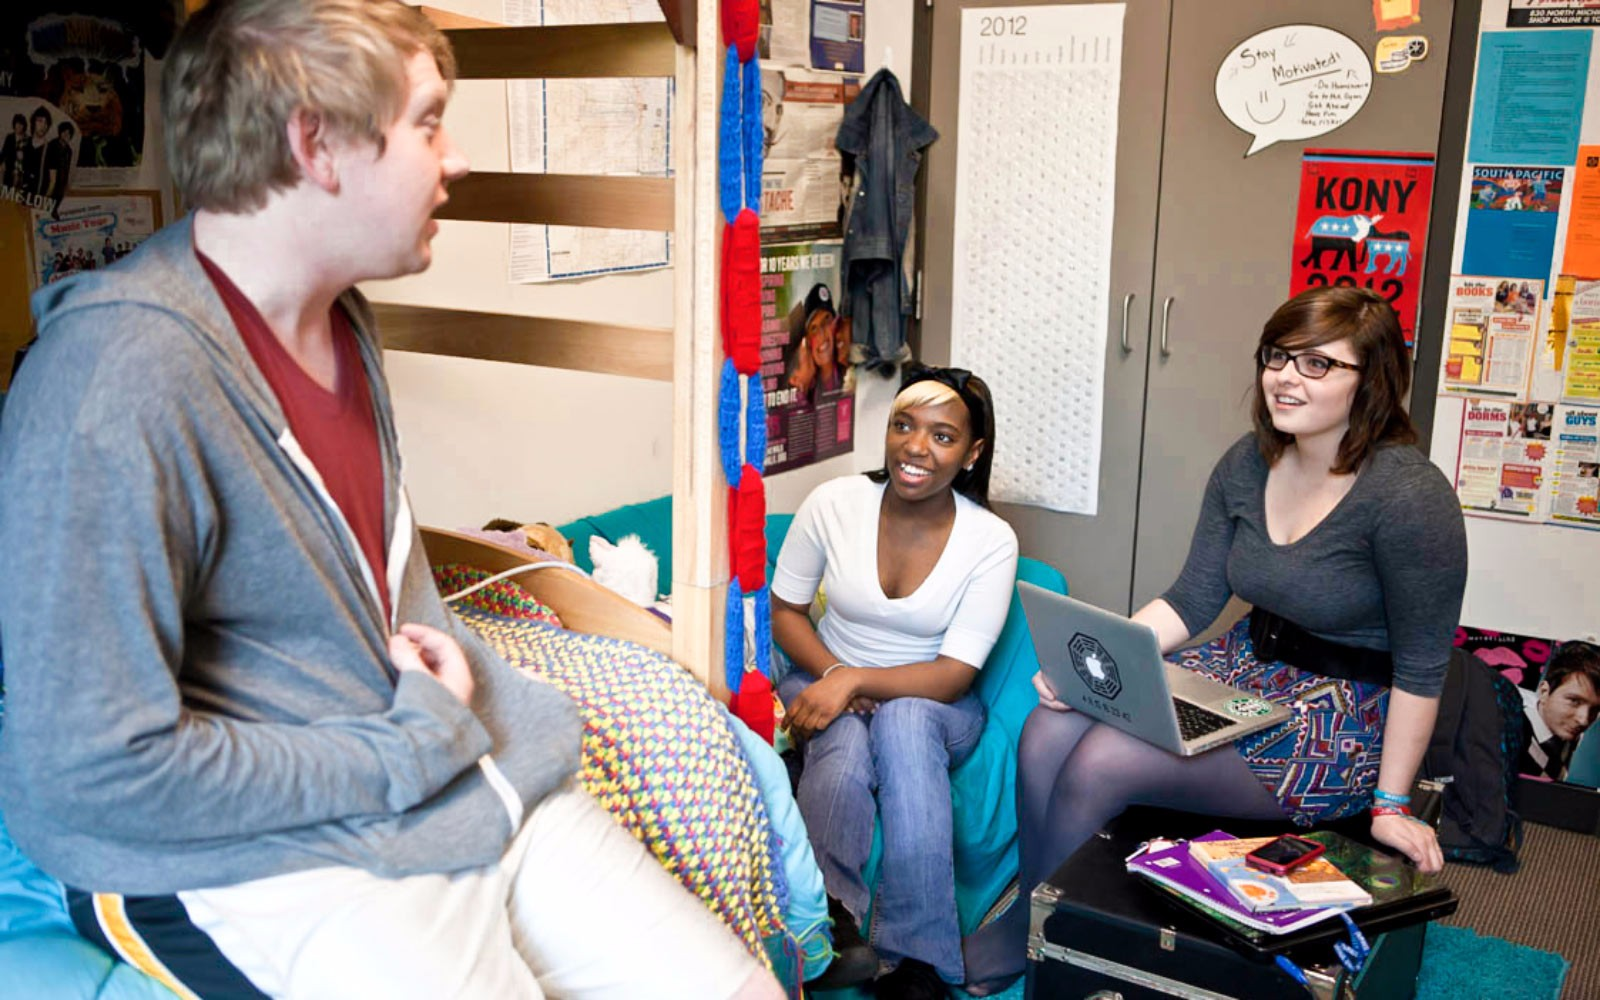 Three students laughing in a dorm room.